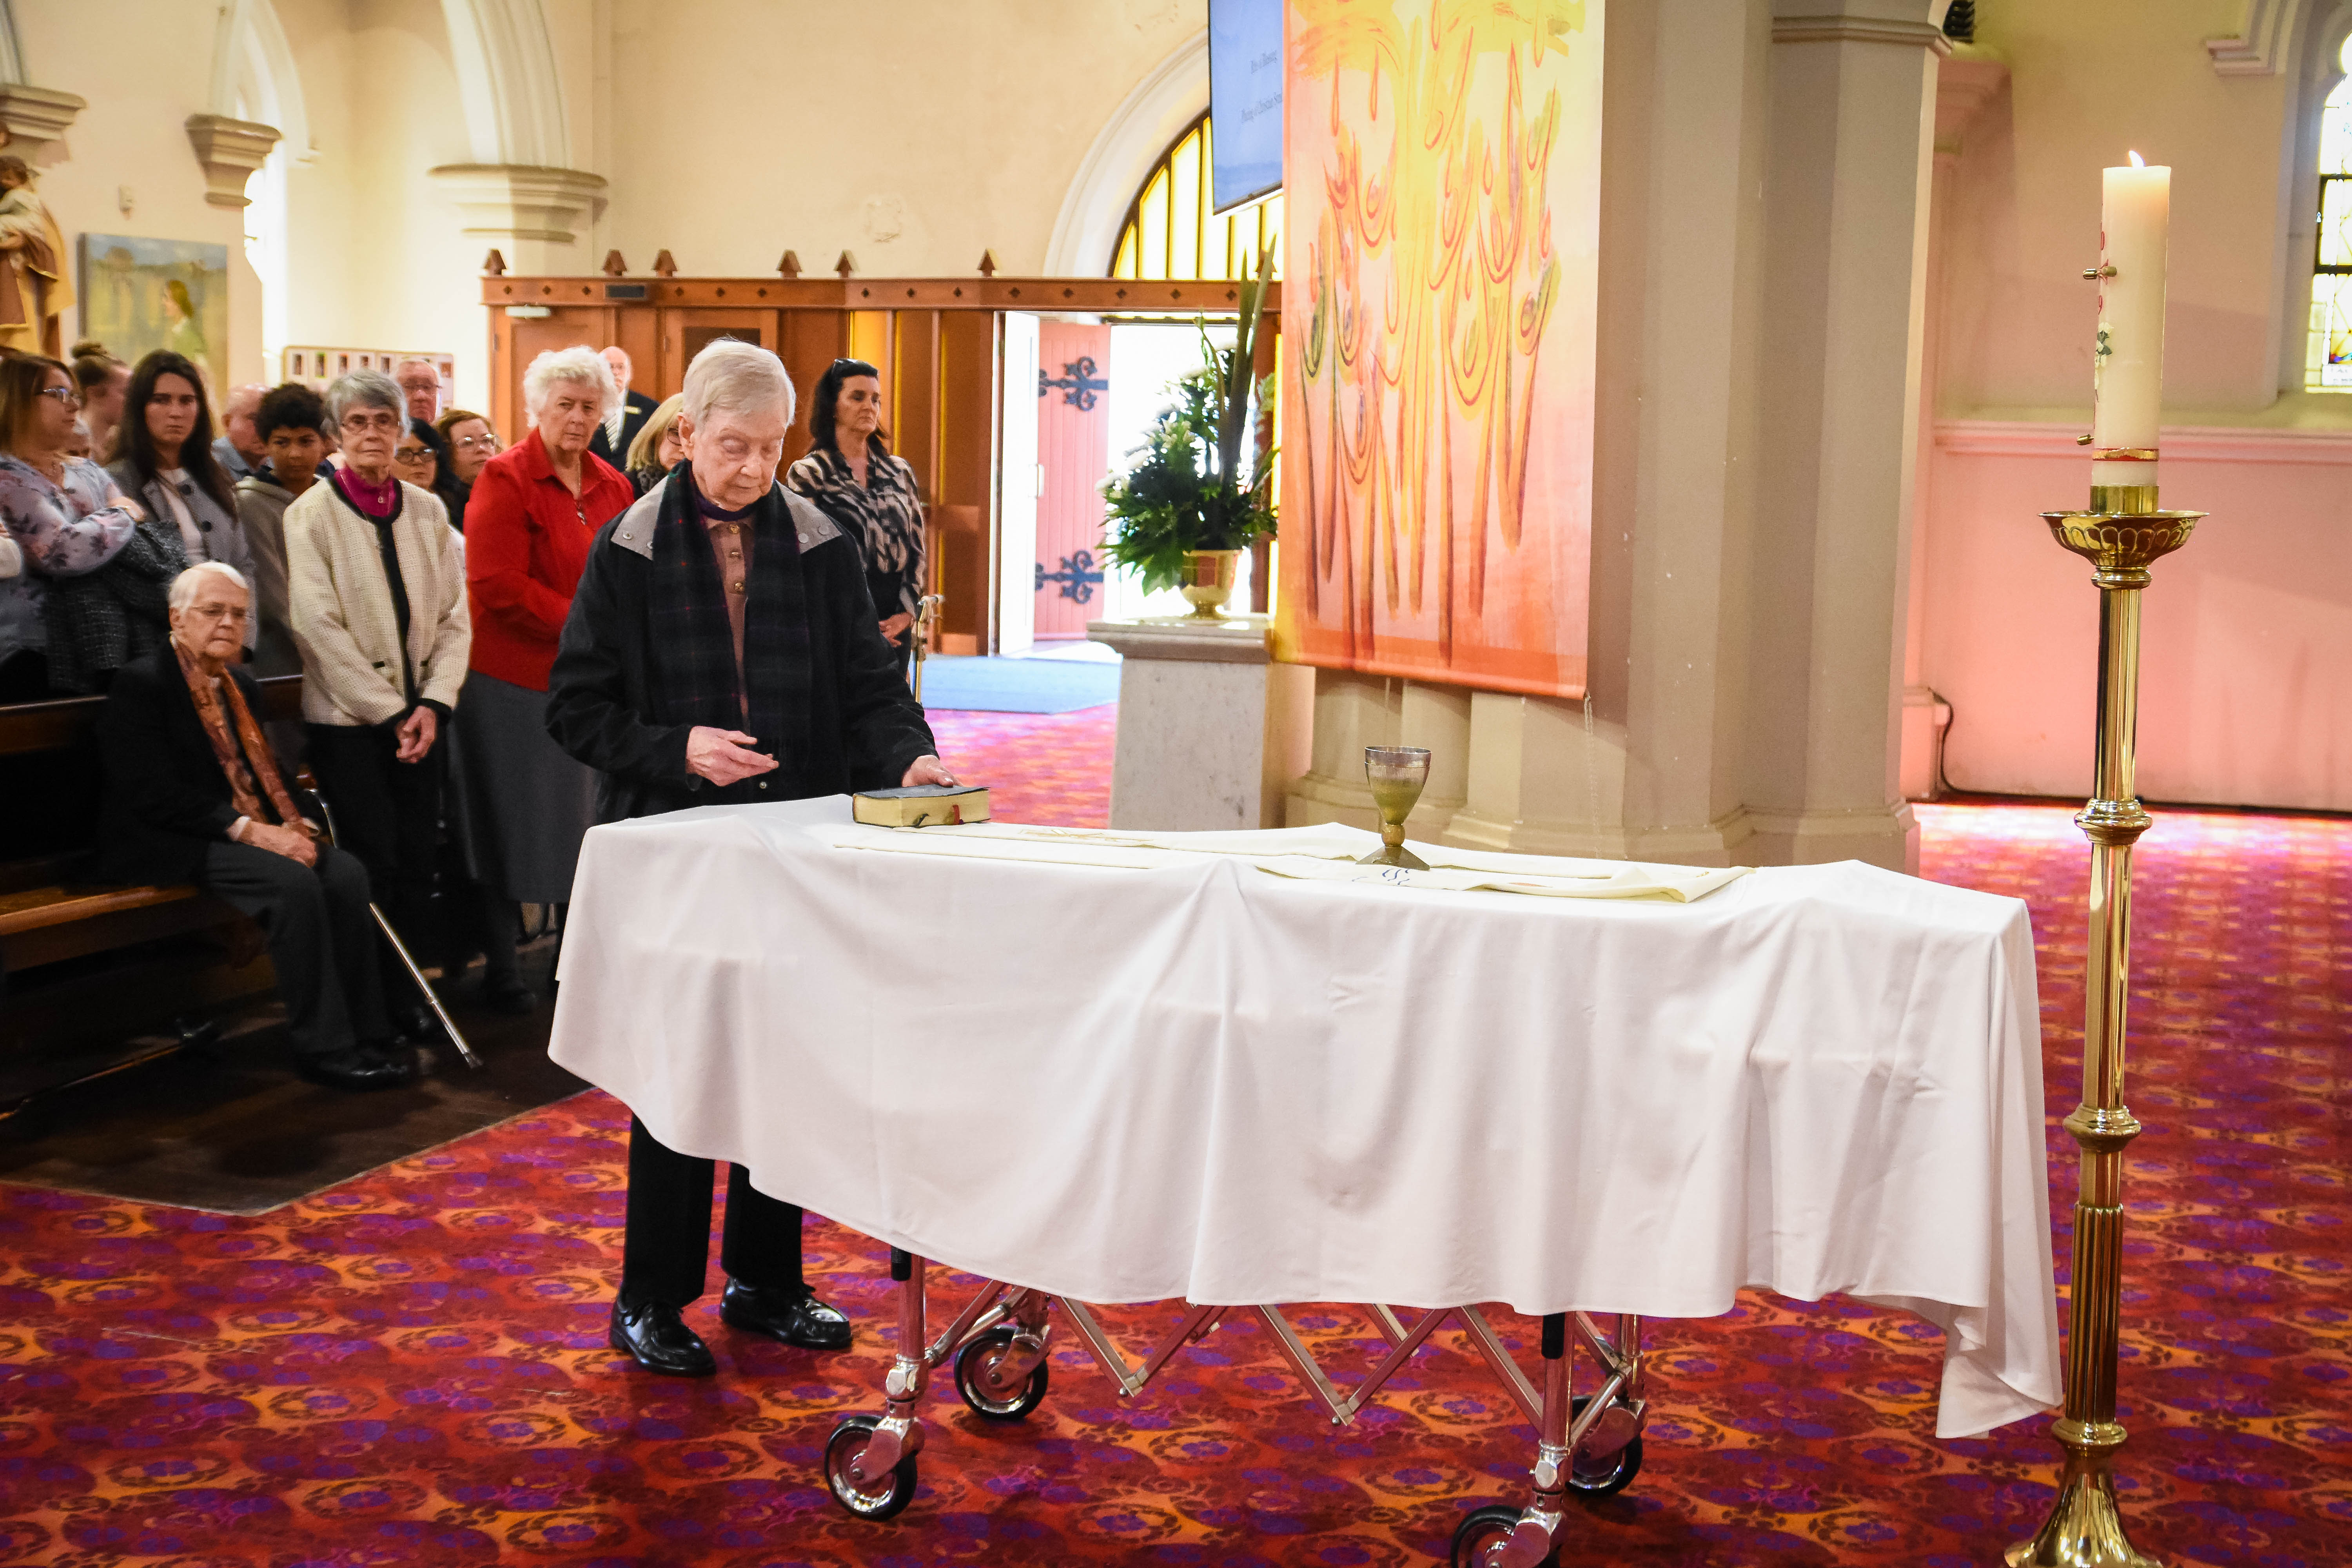 Fr Pat Hall Funeral